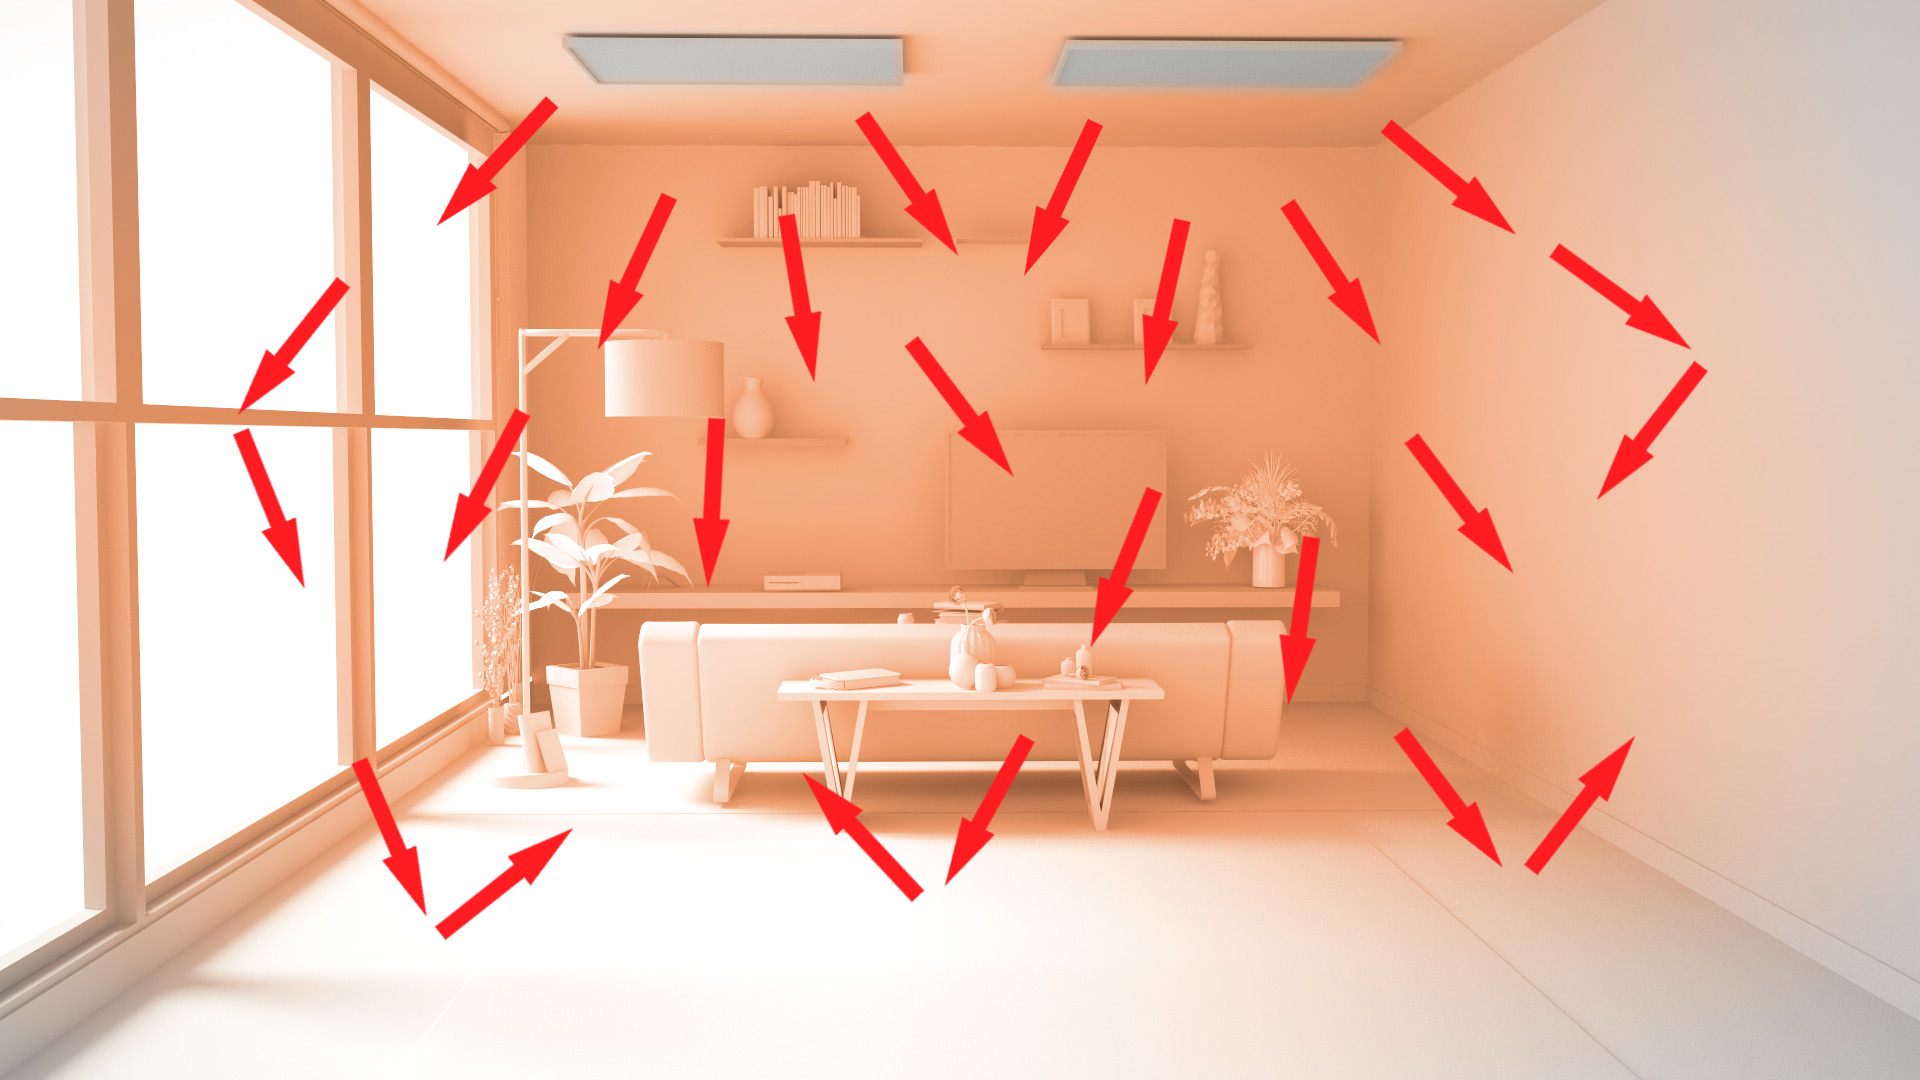 Ceiling IR Heating Panel - How Does It Work?